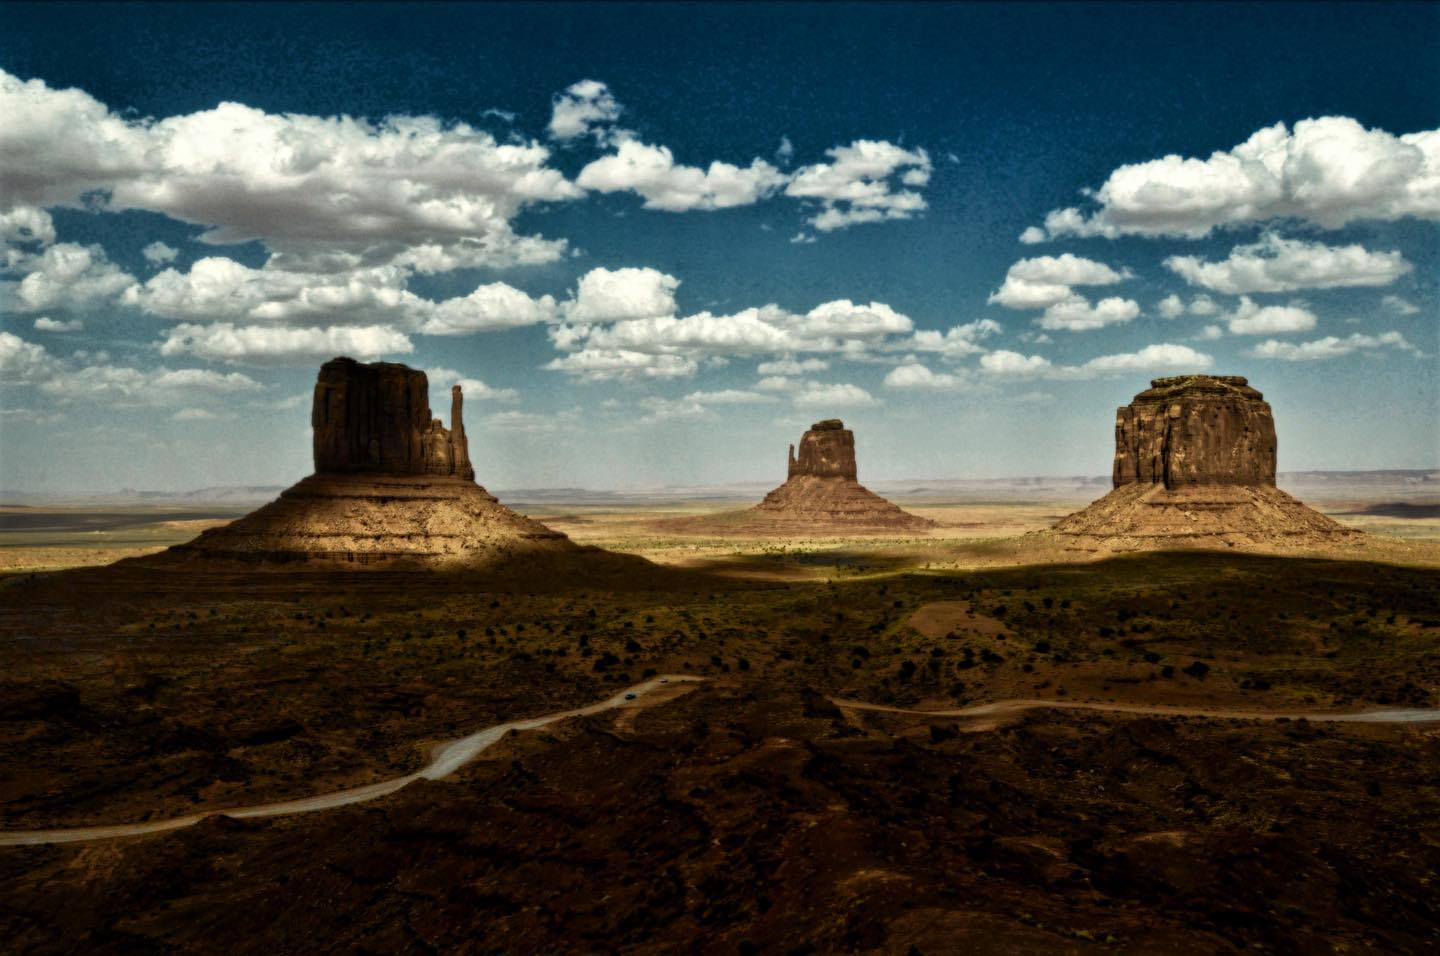 Monument Valley, Arizona/Utah  Last day #usasehnsuchtstage @ccountryatheart   For us, as probably for many others, Monument Valley is a magical place.  #usa #us #usatravel #usatravels #monumentvalley #onlyinutah #onlyinarizona #nature #naturelove #nature_perfection #naturephoto #magicalplace #igshotz #vacationgoals #travellove #takemetherenow #wandergram #passportpassion #travelinspiration #speachlessplaces #usasehnsuchtstage #travelpics #travelstoked #tellus #outdooradventures #stayandwonder #instatravel